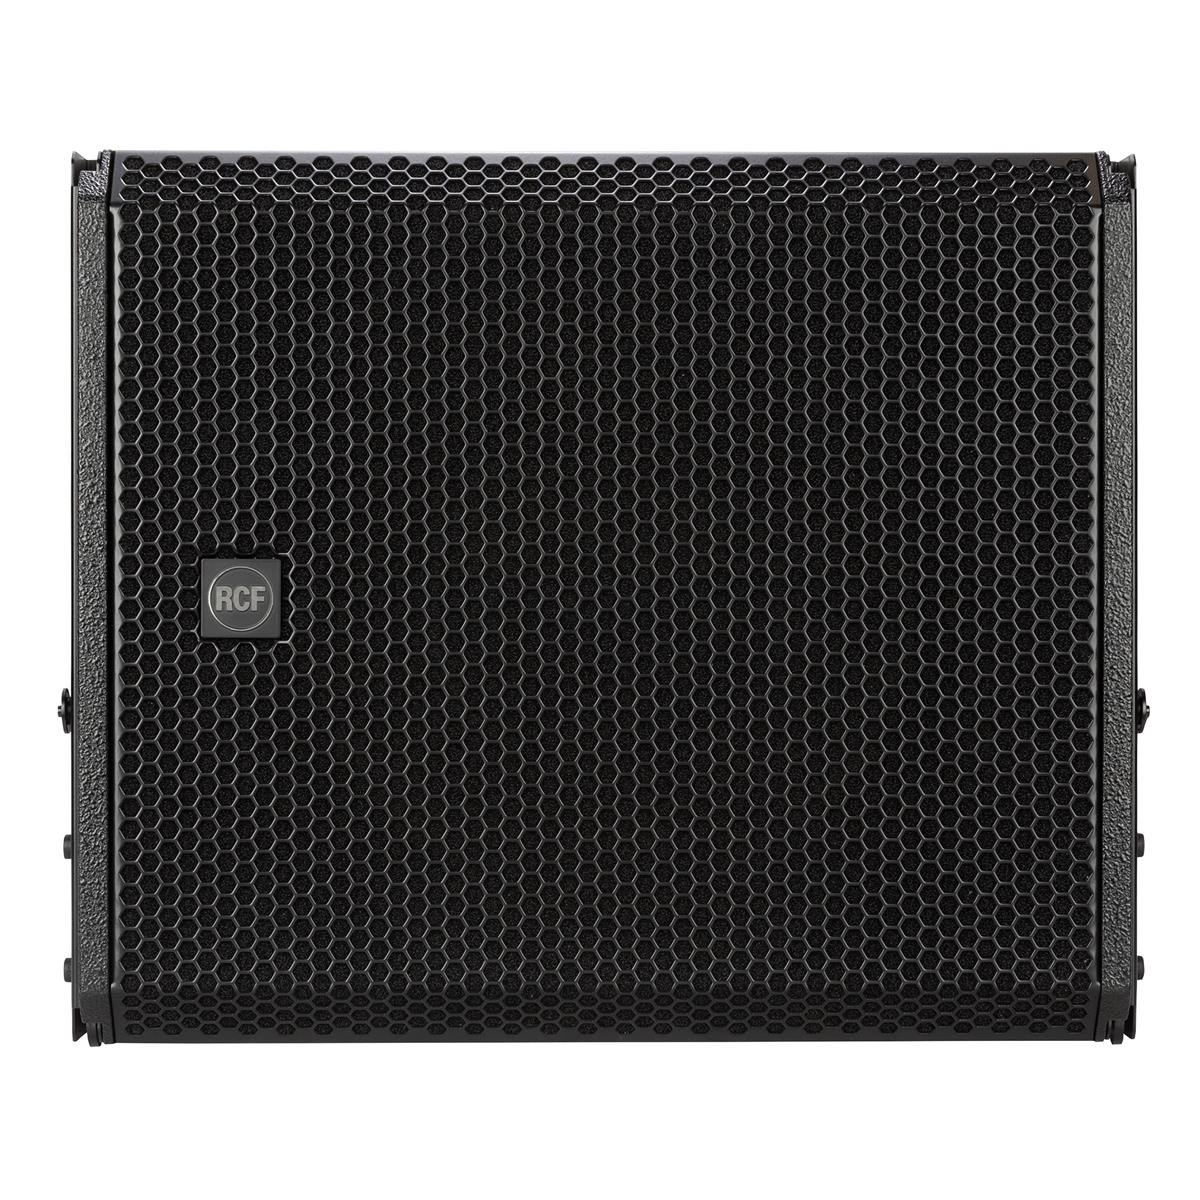 RCF Active line array subwoofer for HDL28, 15in, 1400Wrms, 2